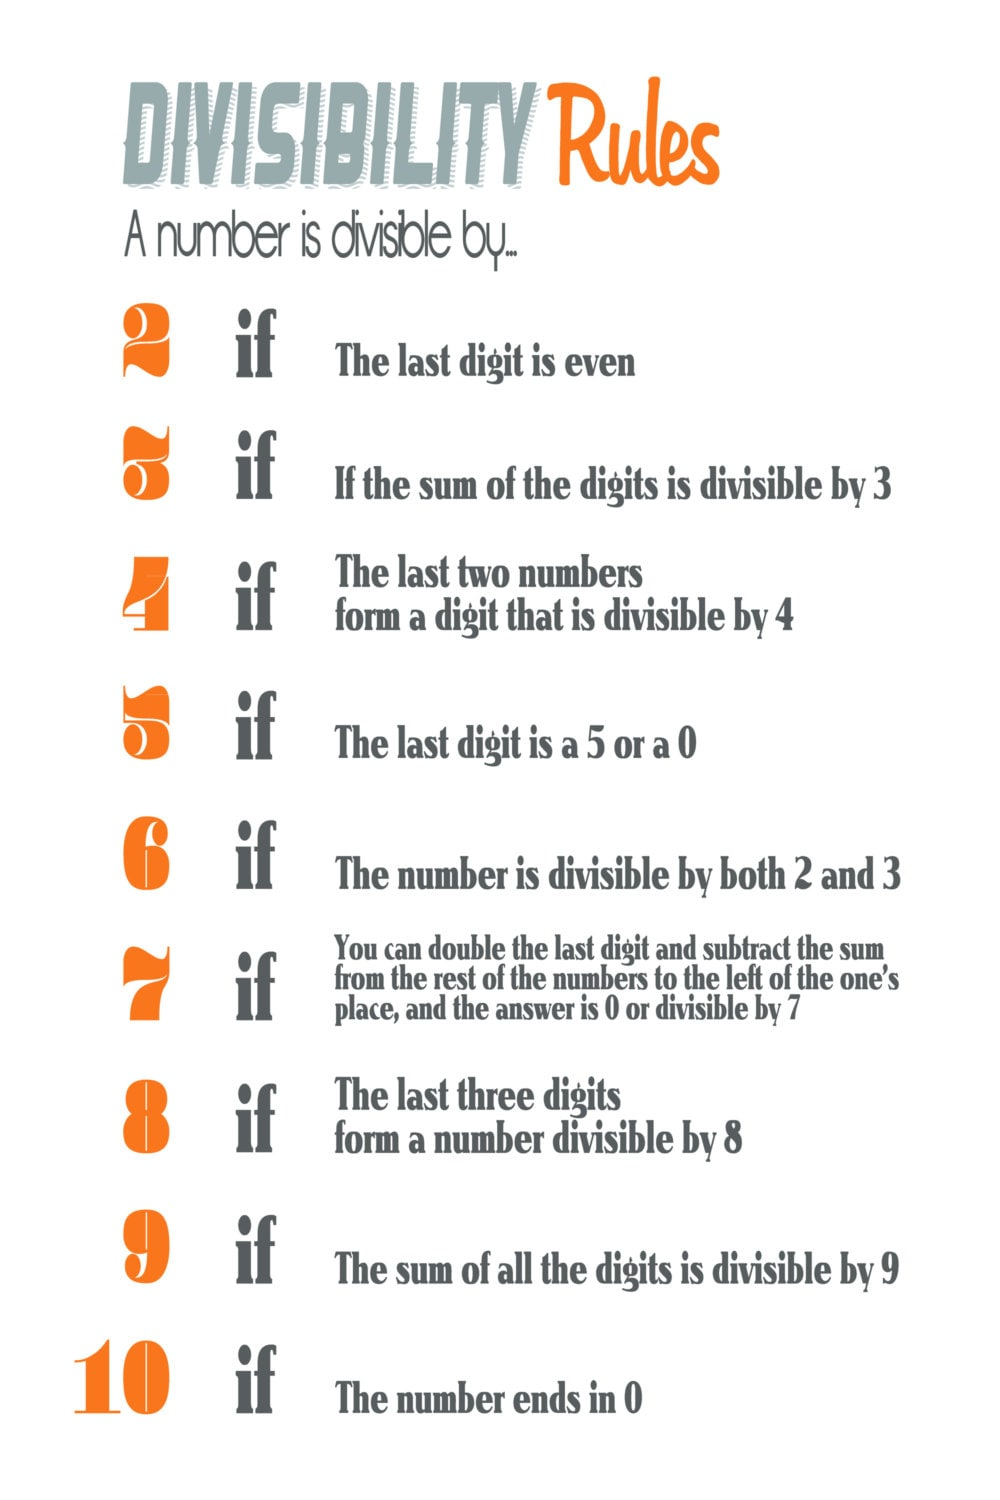 5th grade math worksheets printable – Divisibility Rules Worksheet for 5th Grade